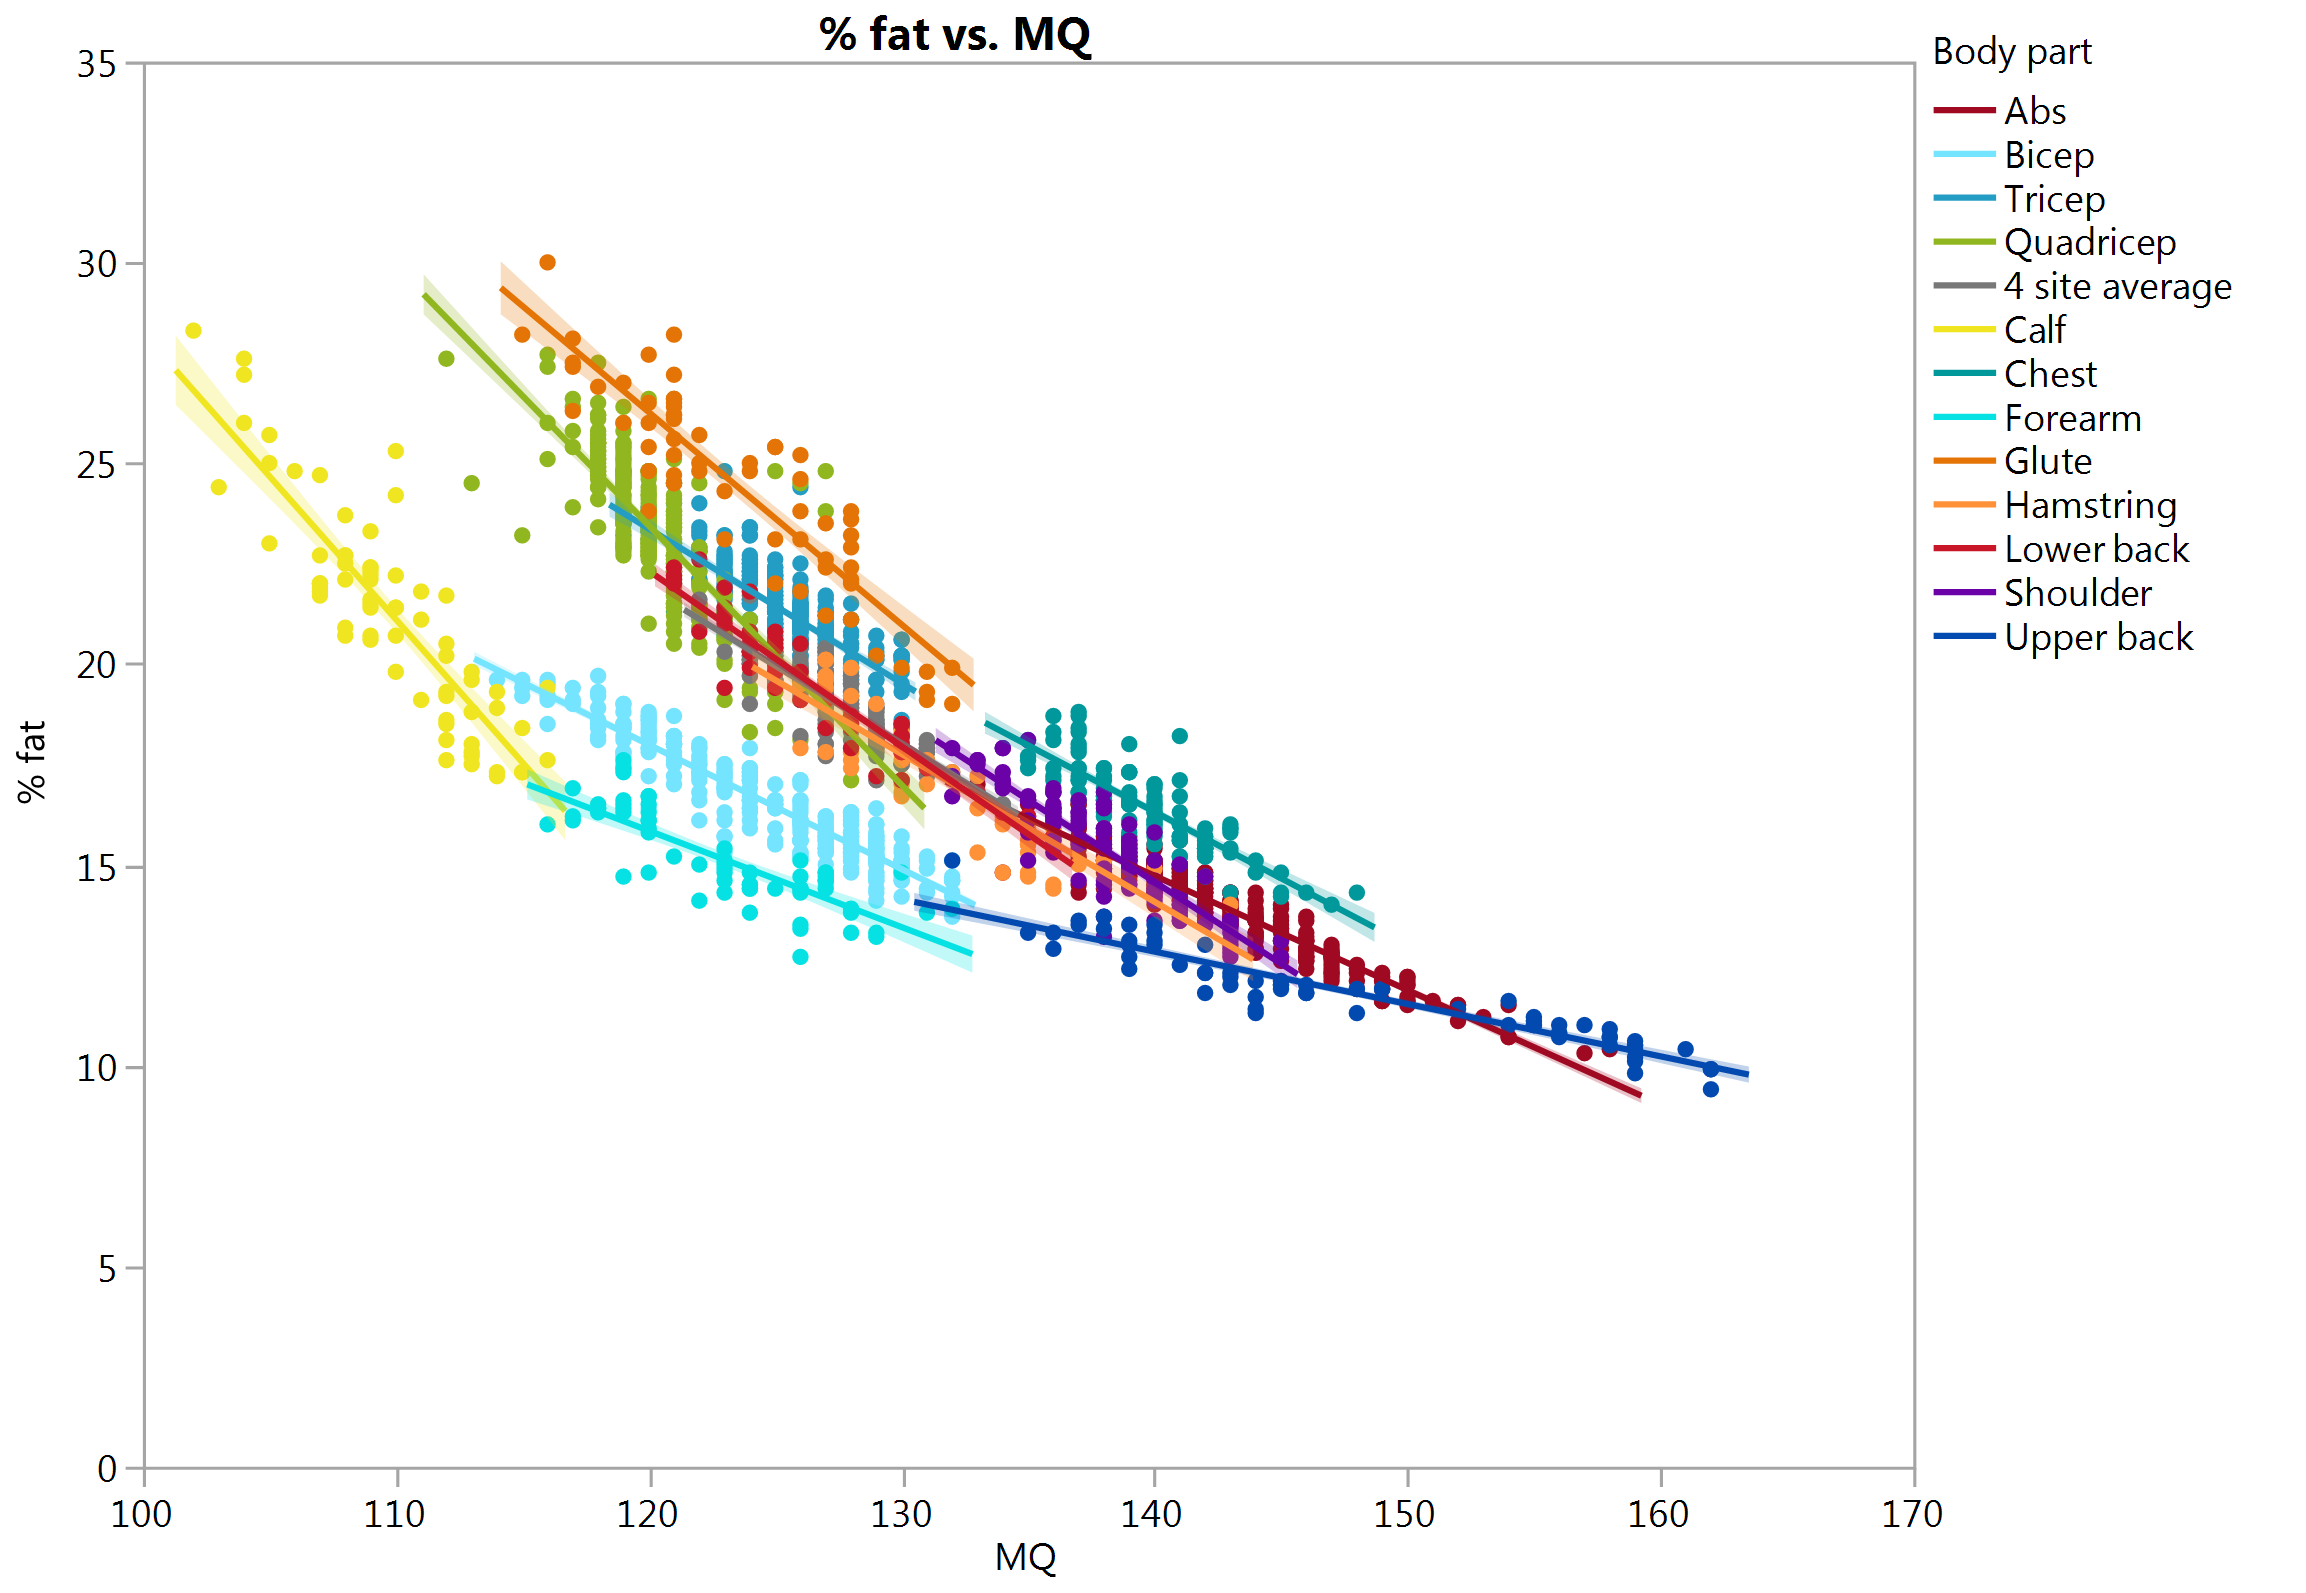 Percent fat vs muscle quality overlay 8-29-15